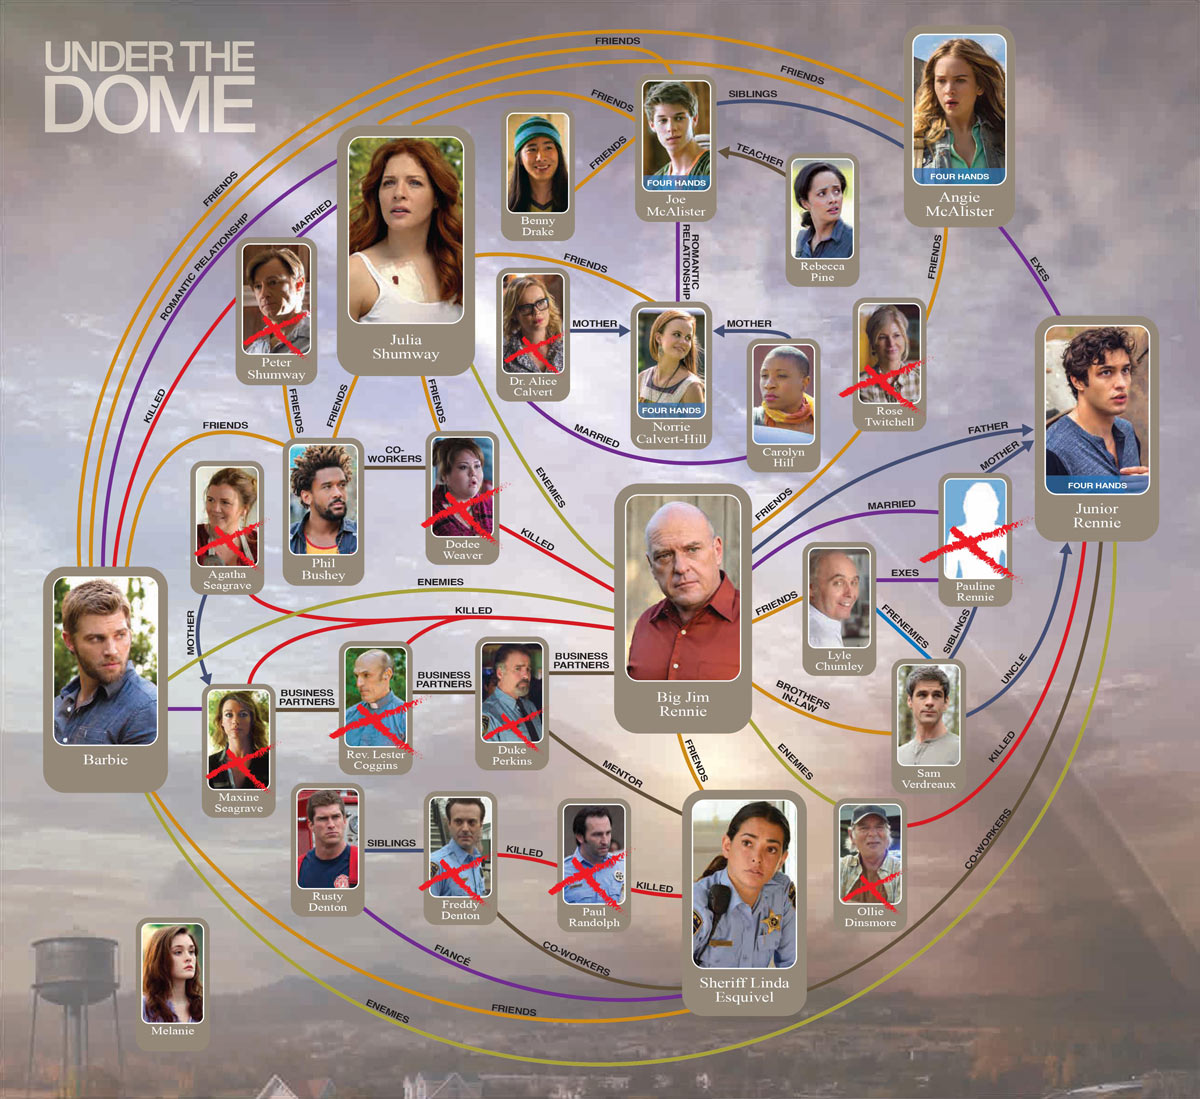 Under the Dome Season 2 Character Map